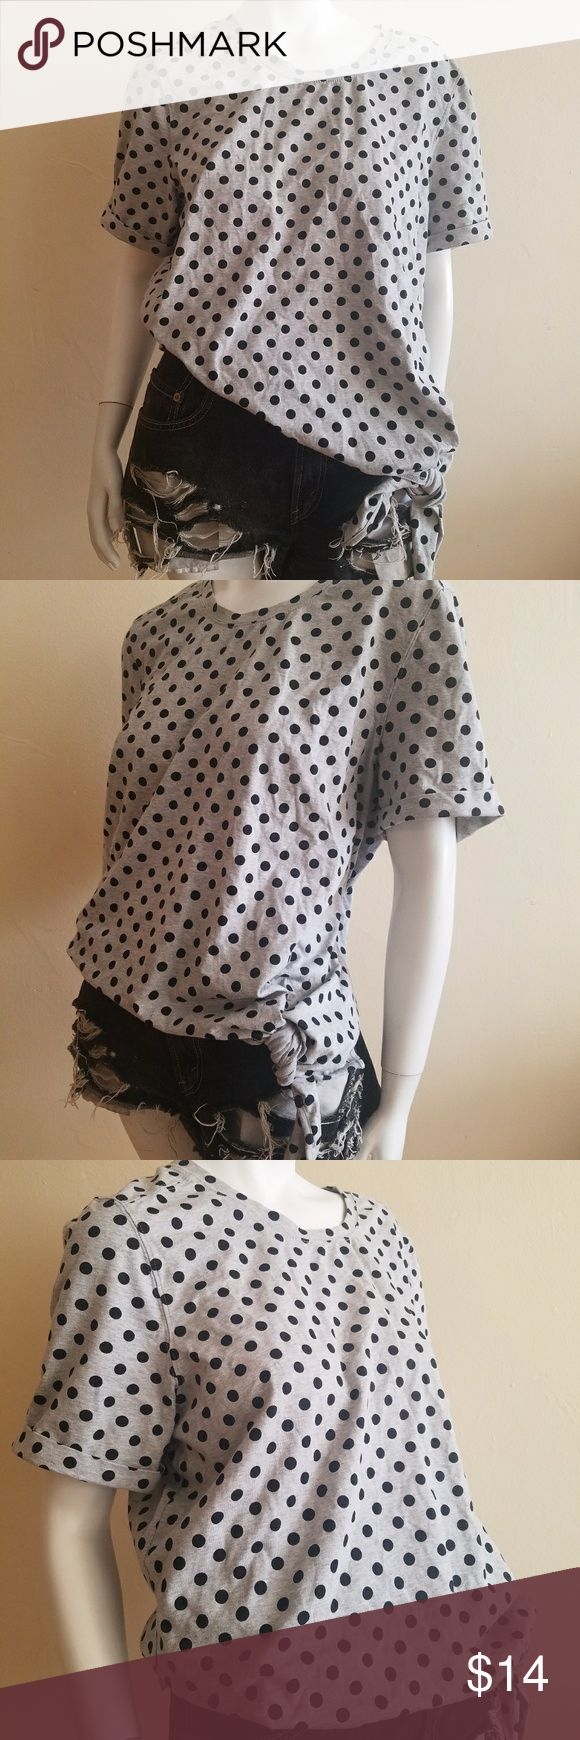 Oversized Polka Dot Tee Tagless! Found at a Vintage Shop. Grey and Black Polka Dot Print Tee With Cuffed Sleeves And Side Tie Detail   Tagless! Estimated Size Medium. Probably a Cotton Blend if not 100%  #polkadot #tshirt #oversized Tops Tees - Short Sleeve